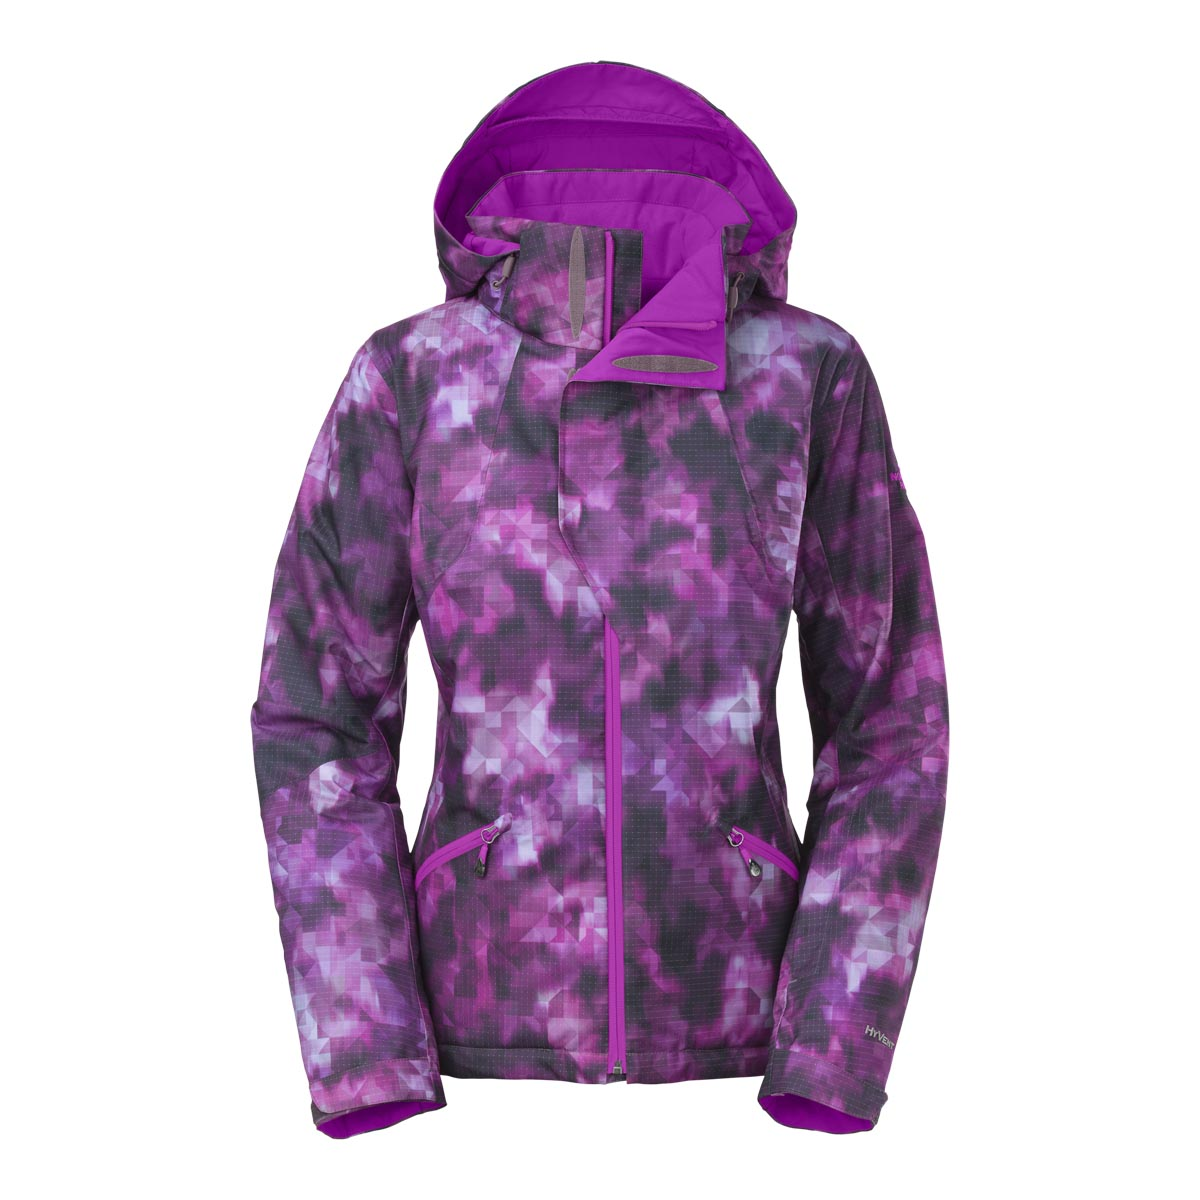 The North Face Women's Lulea Jacket